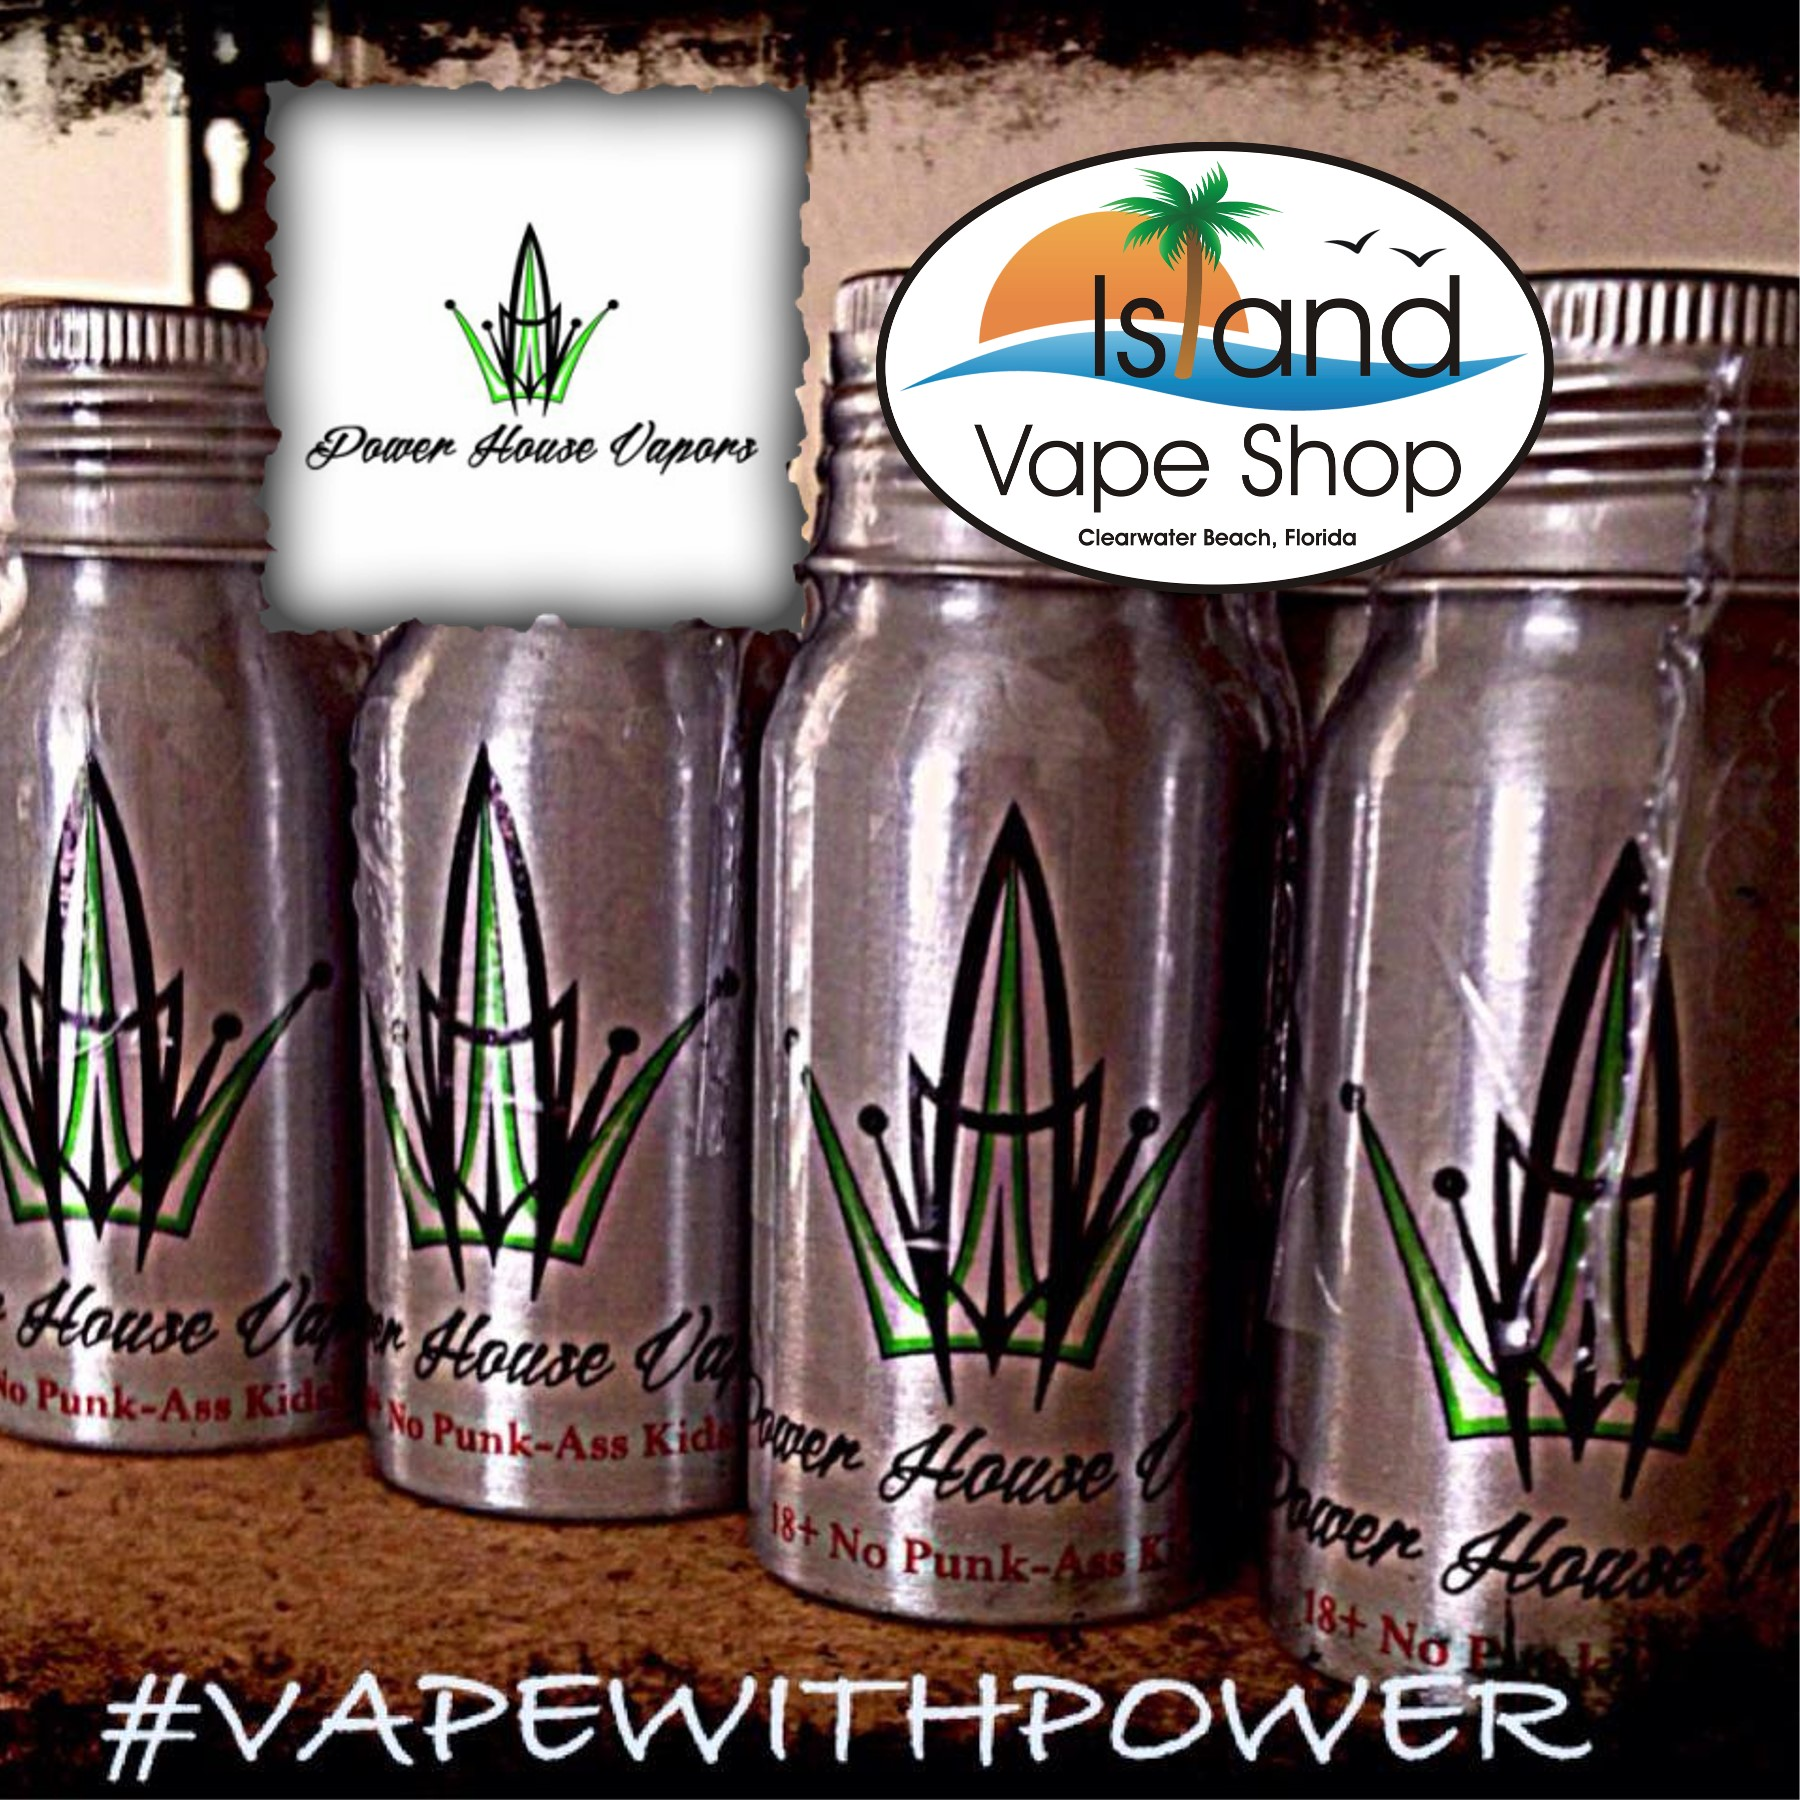 island_vape_shop_clearwater_beach_ecig_eliquid_vape_with_power_house_vapors_cluth_throttle_torque_boost_vapor_juice.jpg